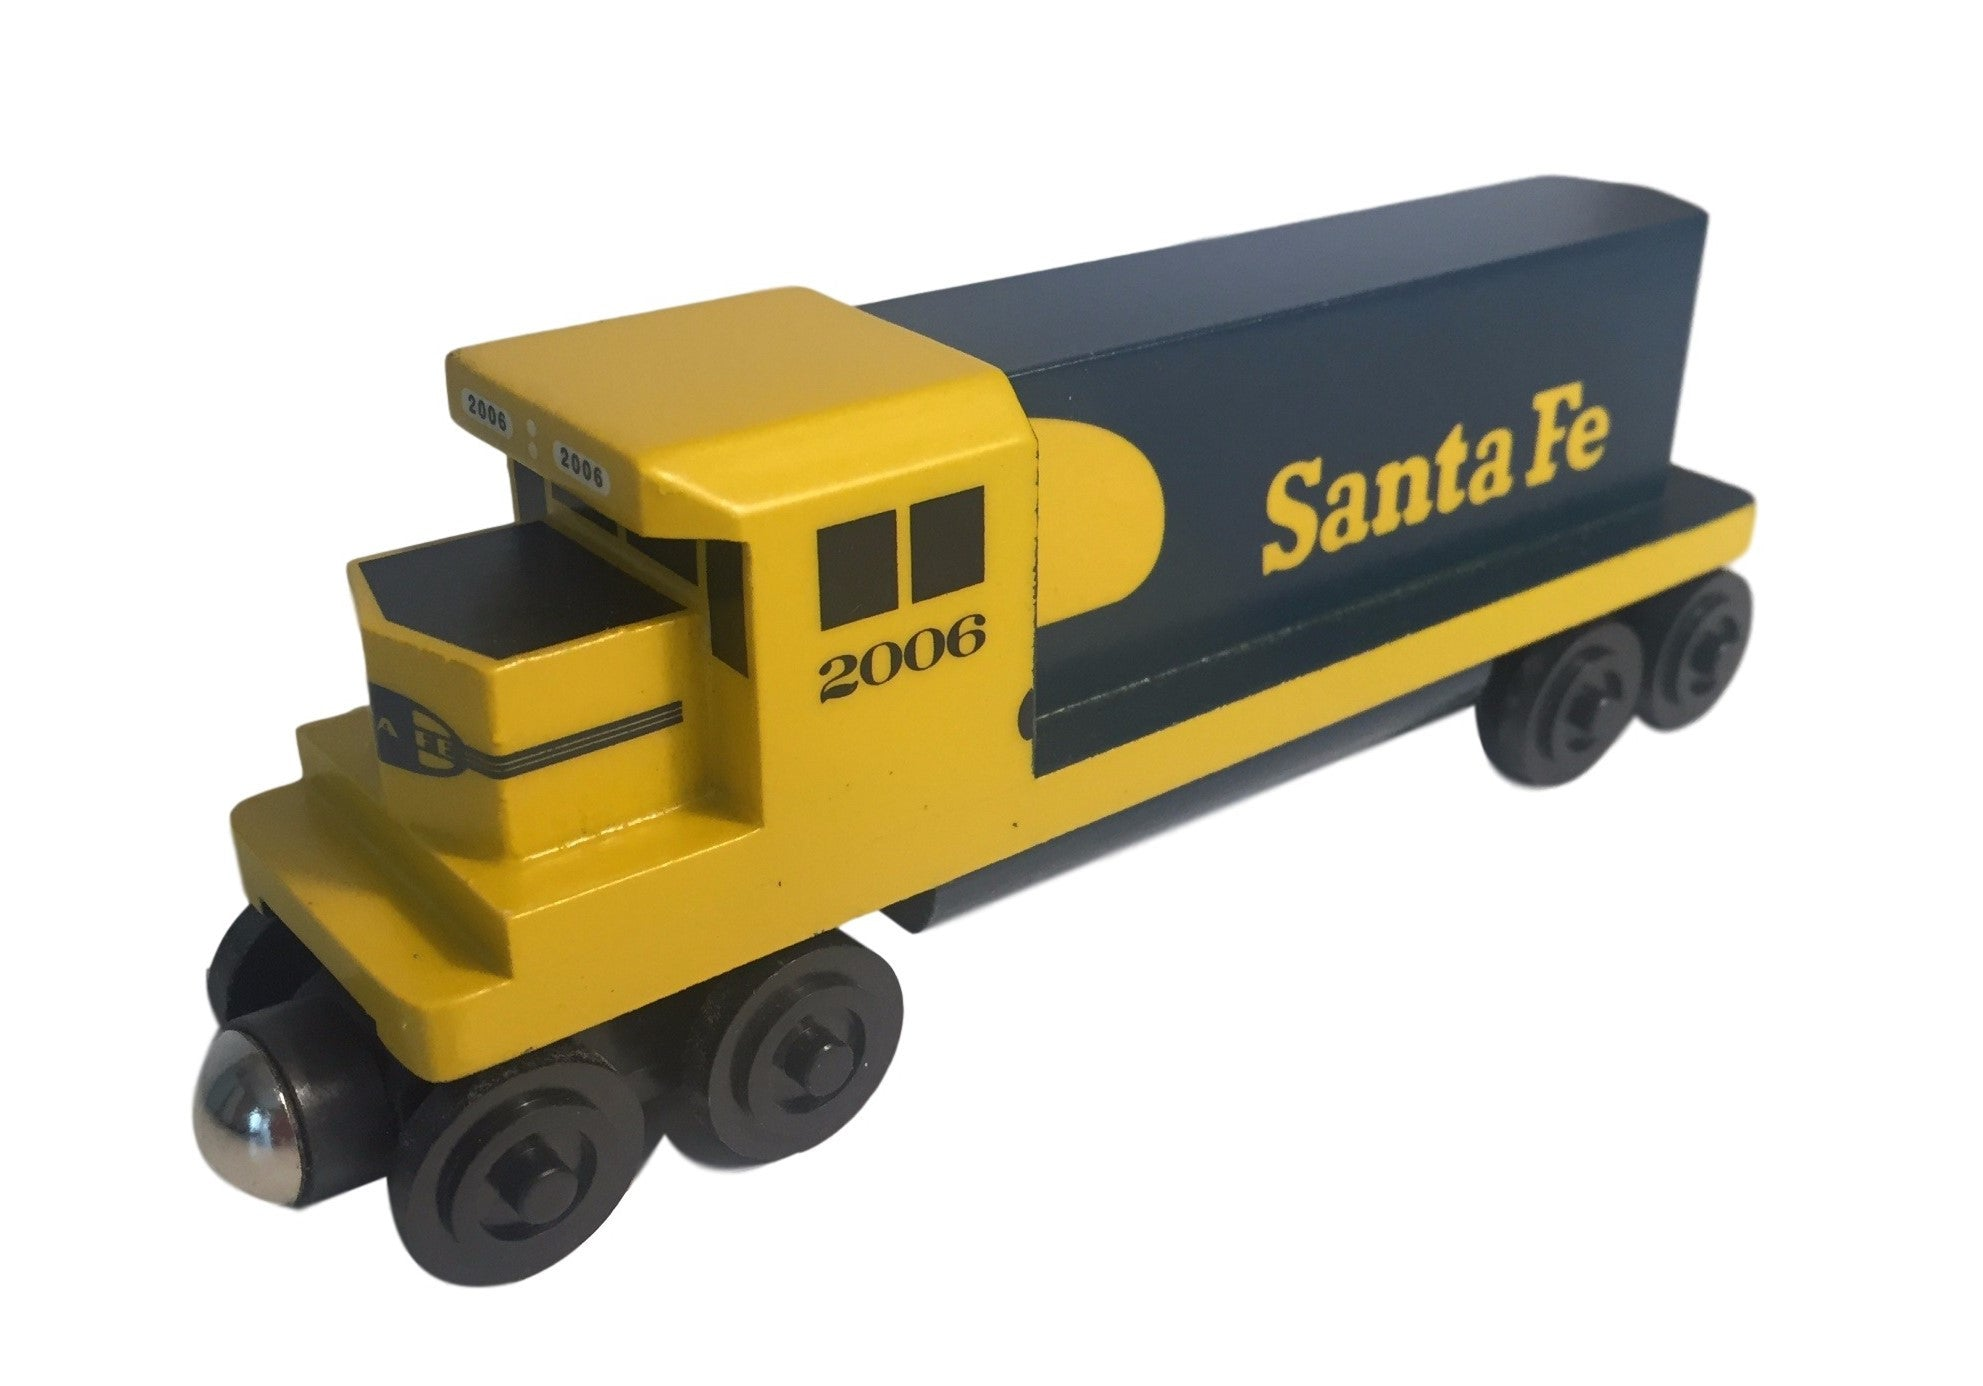 Whittle Shortline Railroad Santa Fe Yellowbonnet GP-38 Diesel Engine Wooden Toy Train